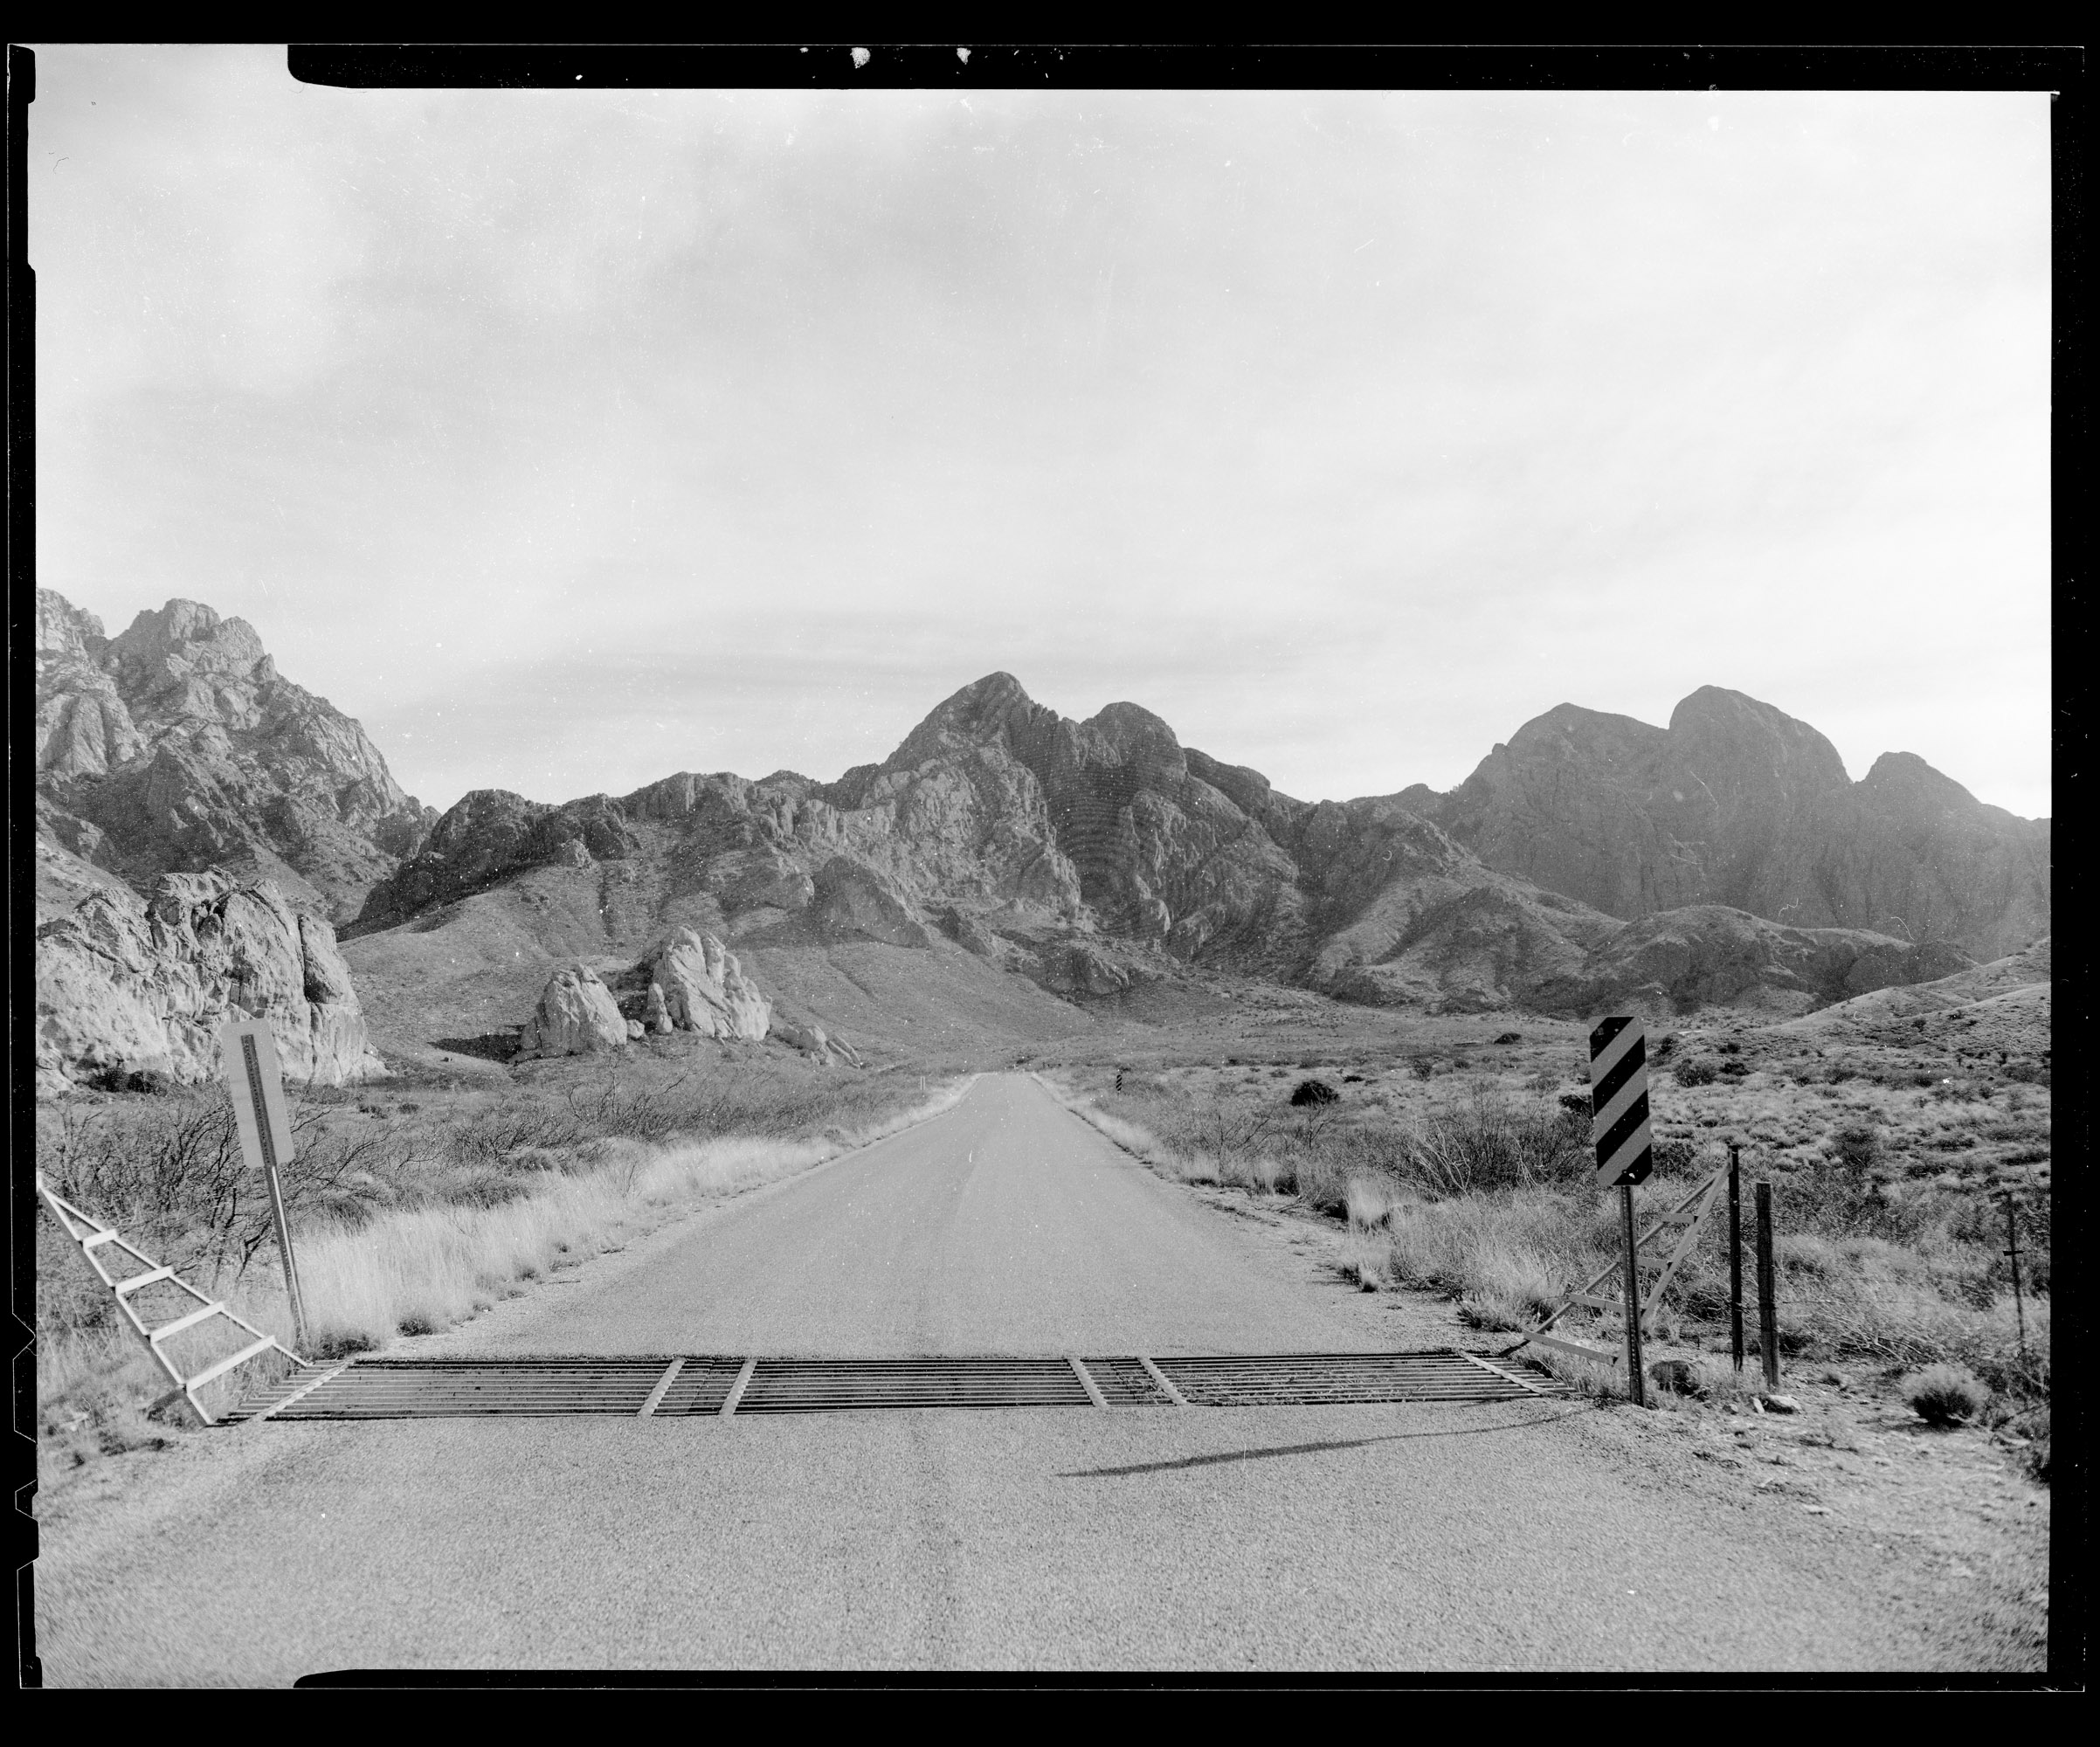 The Organ Mountains just outside of Las Cruces, NM. CAMERADACTYL OG 4x5, Expired (1992) Plus-X, Kodak Ektar 127mm